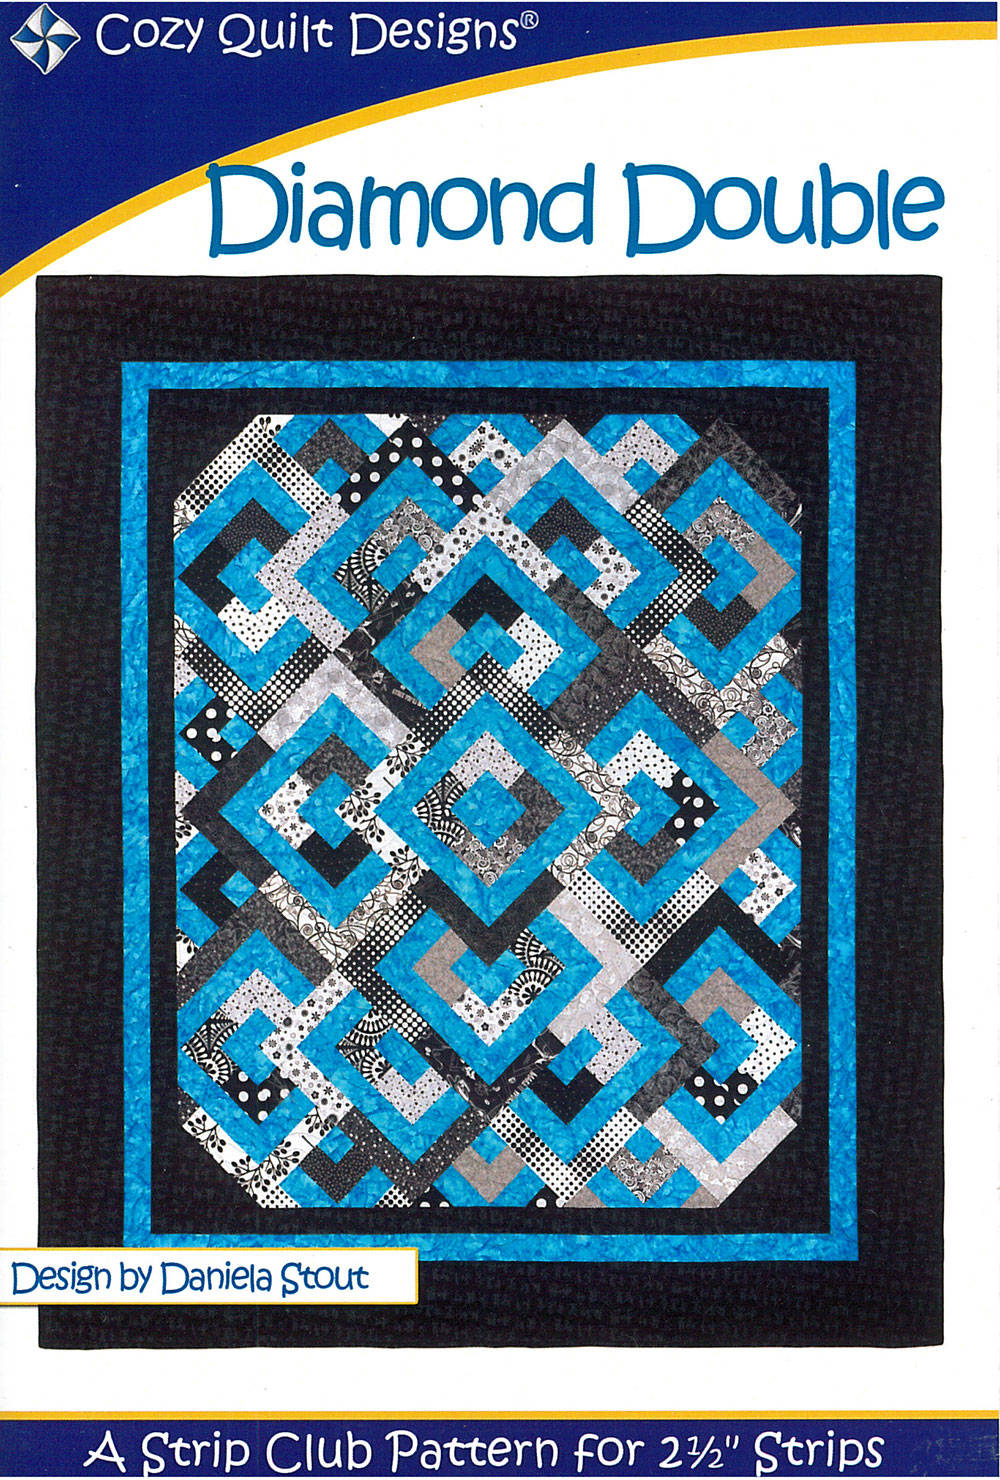 Diamond Double by Cozy Quilt Designs